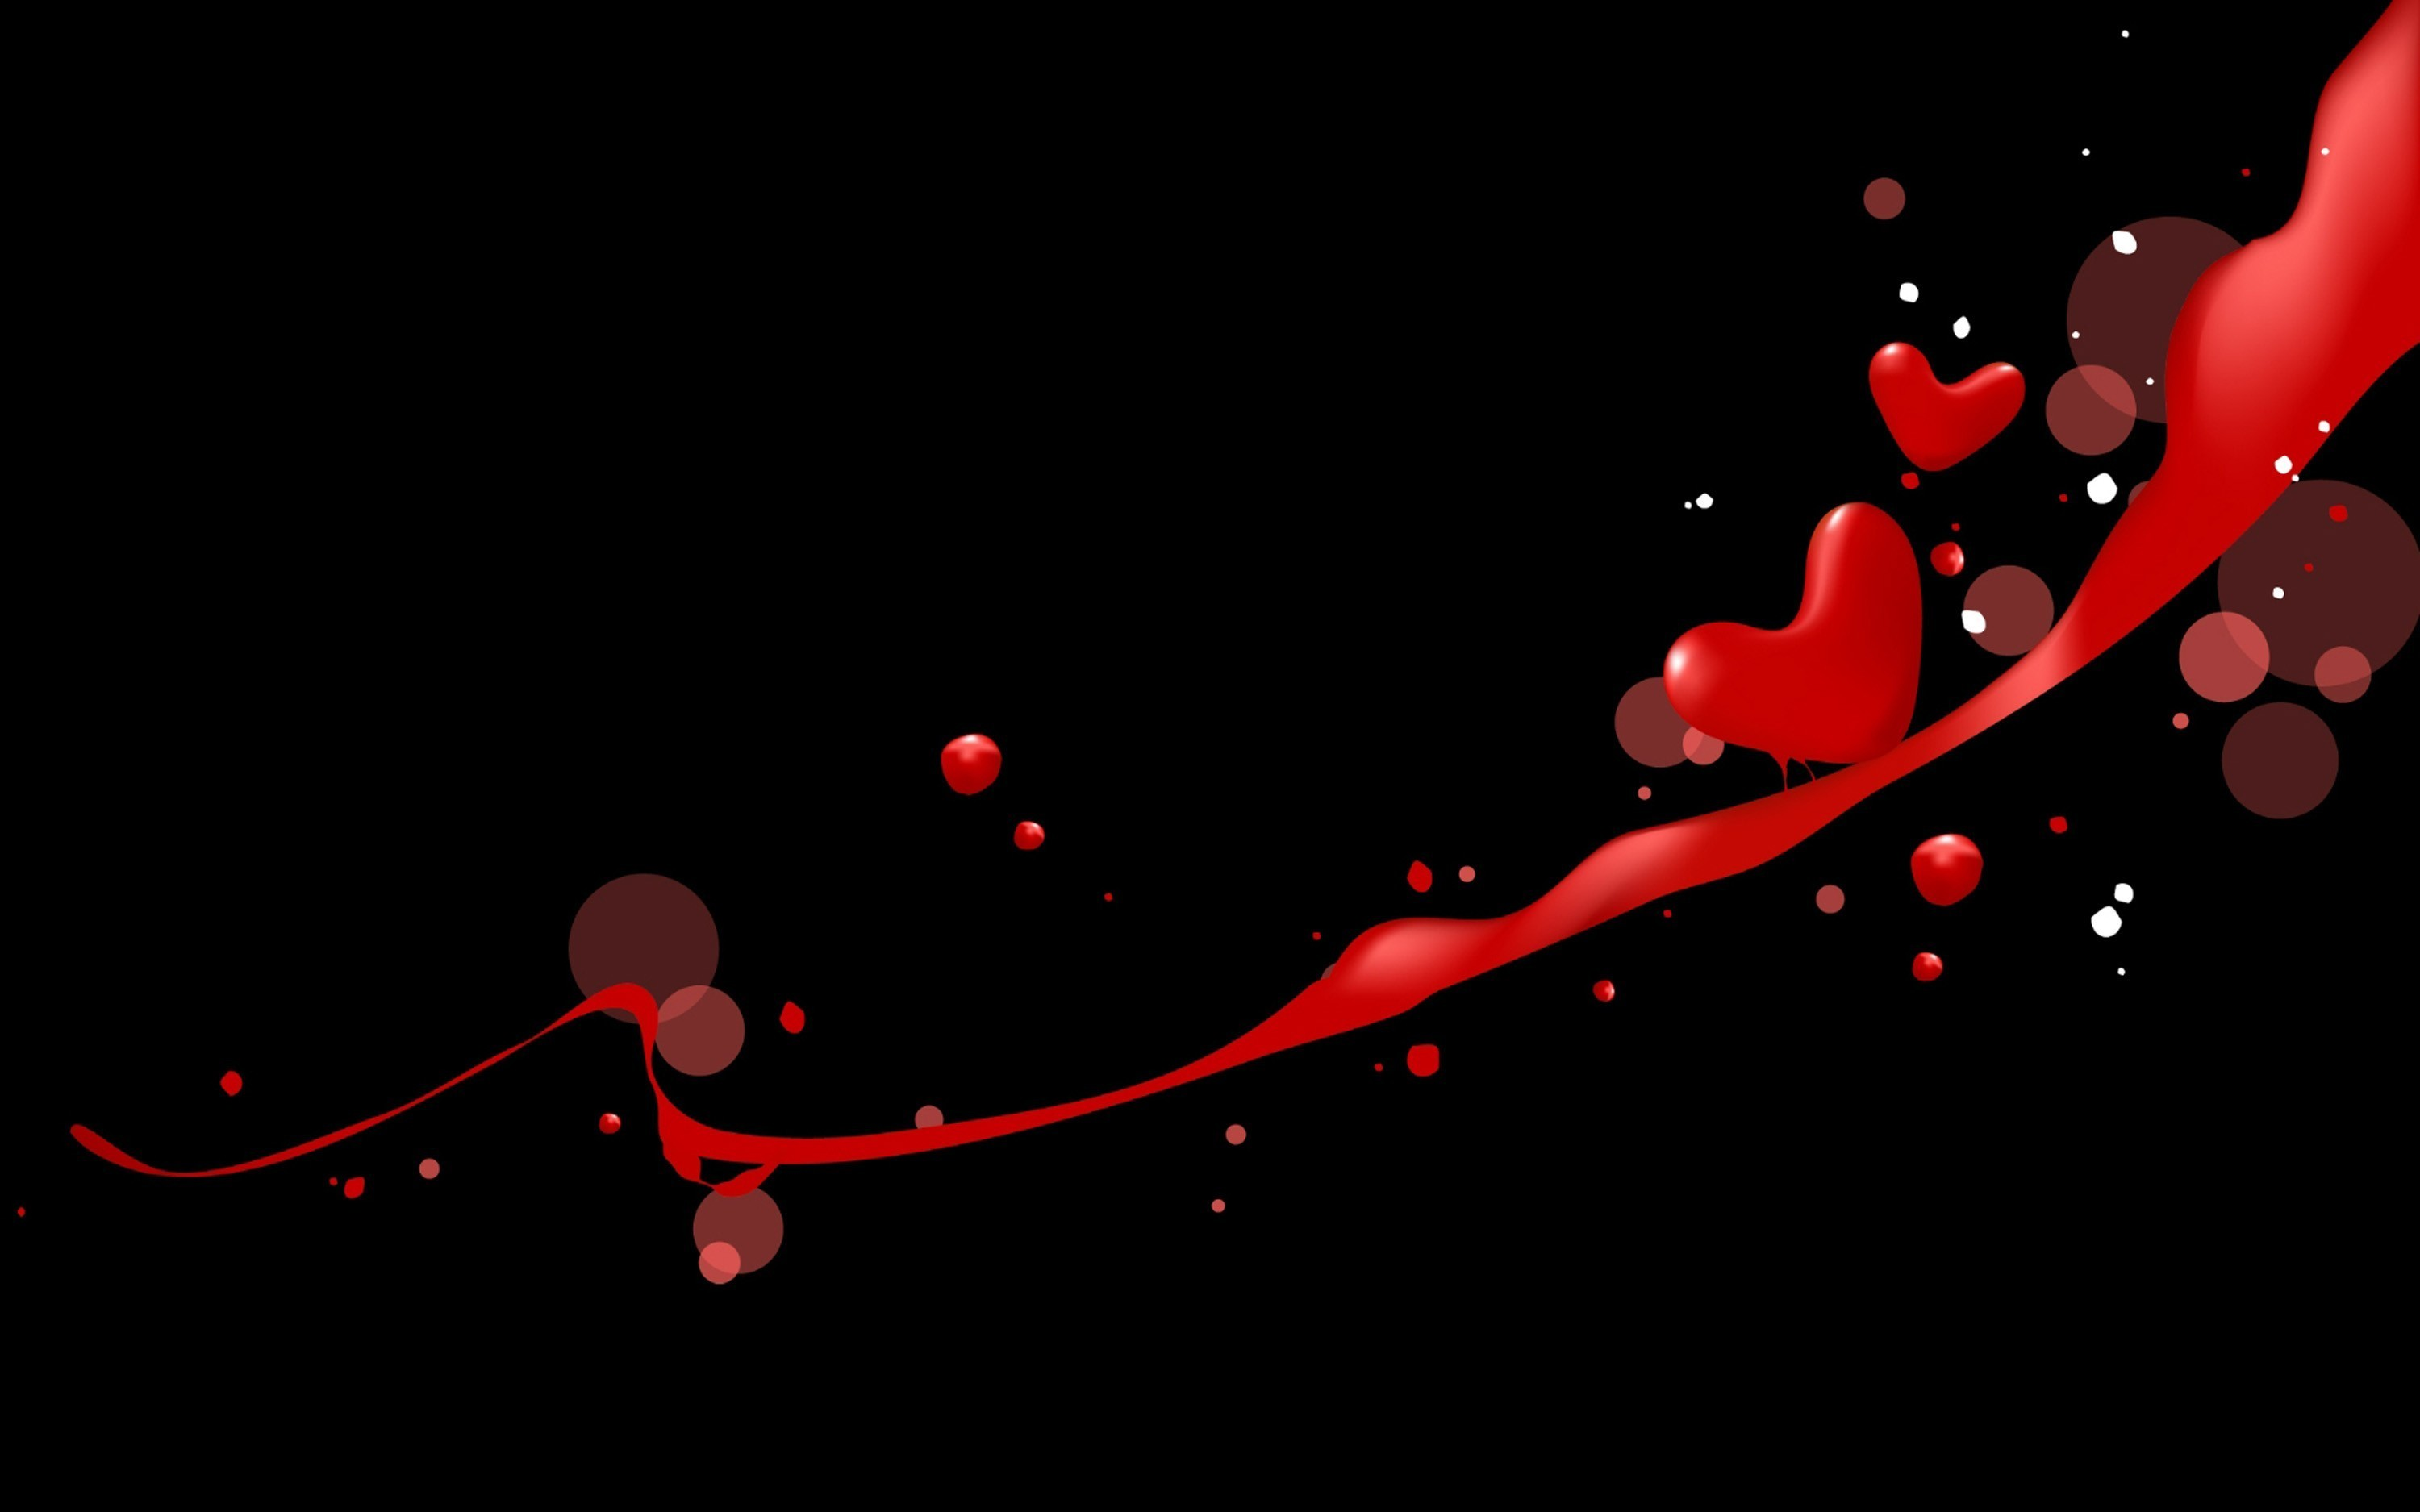 Black And Red Heart Wallpaper (61+ Images